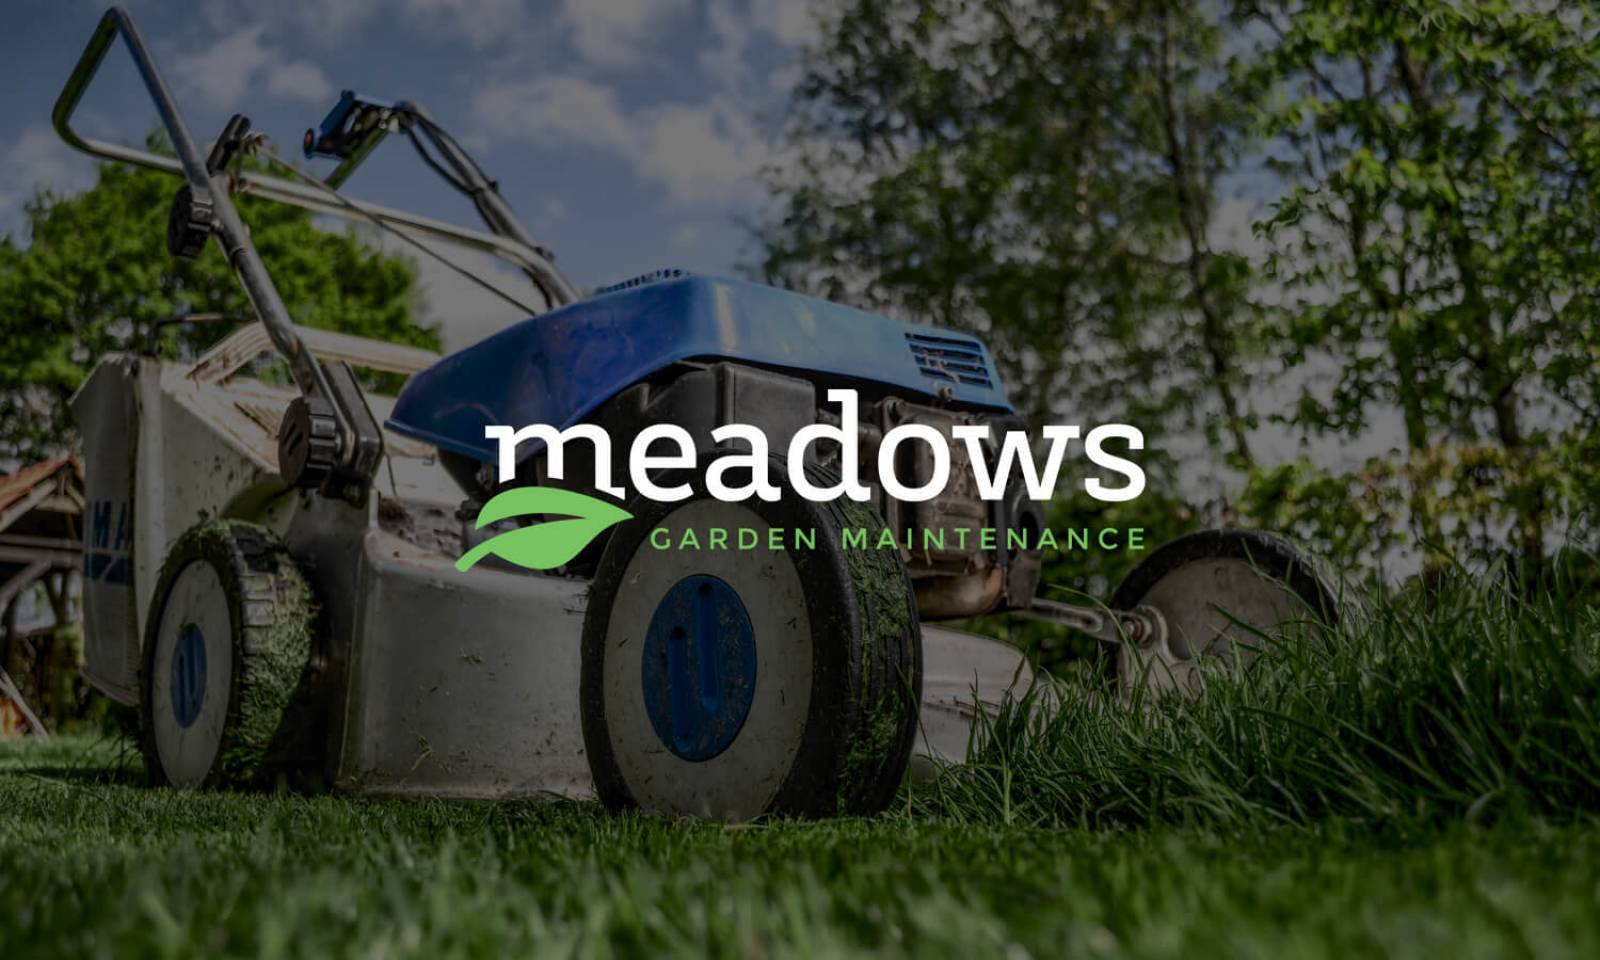 Meadows-logo-2-corporate-identity-agency-graphic-design-canterbury.jpg